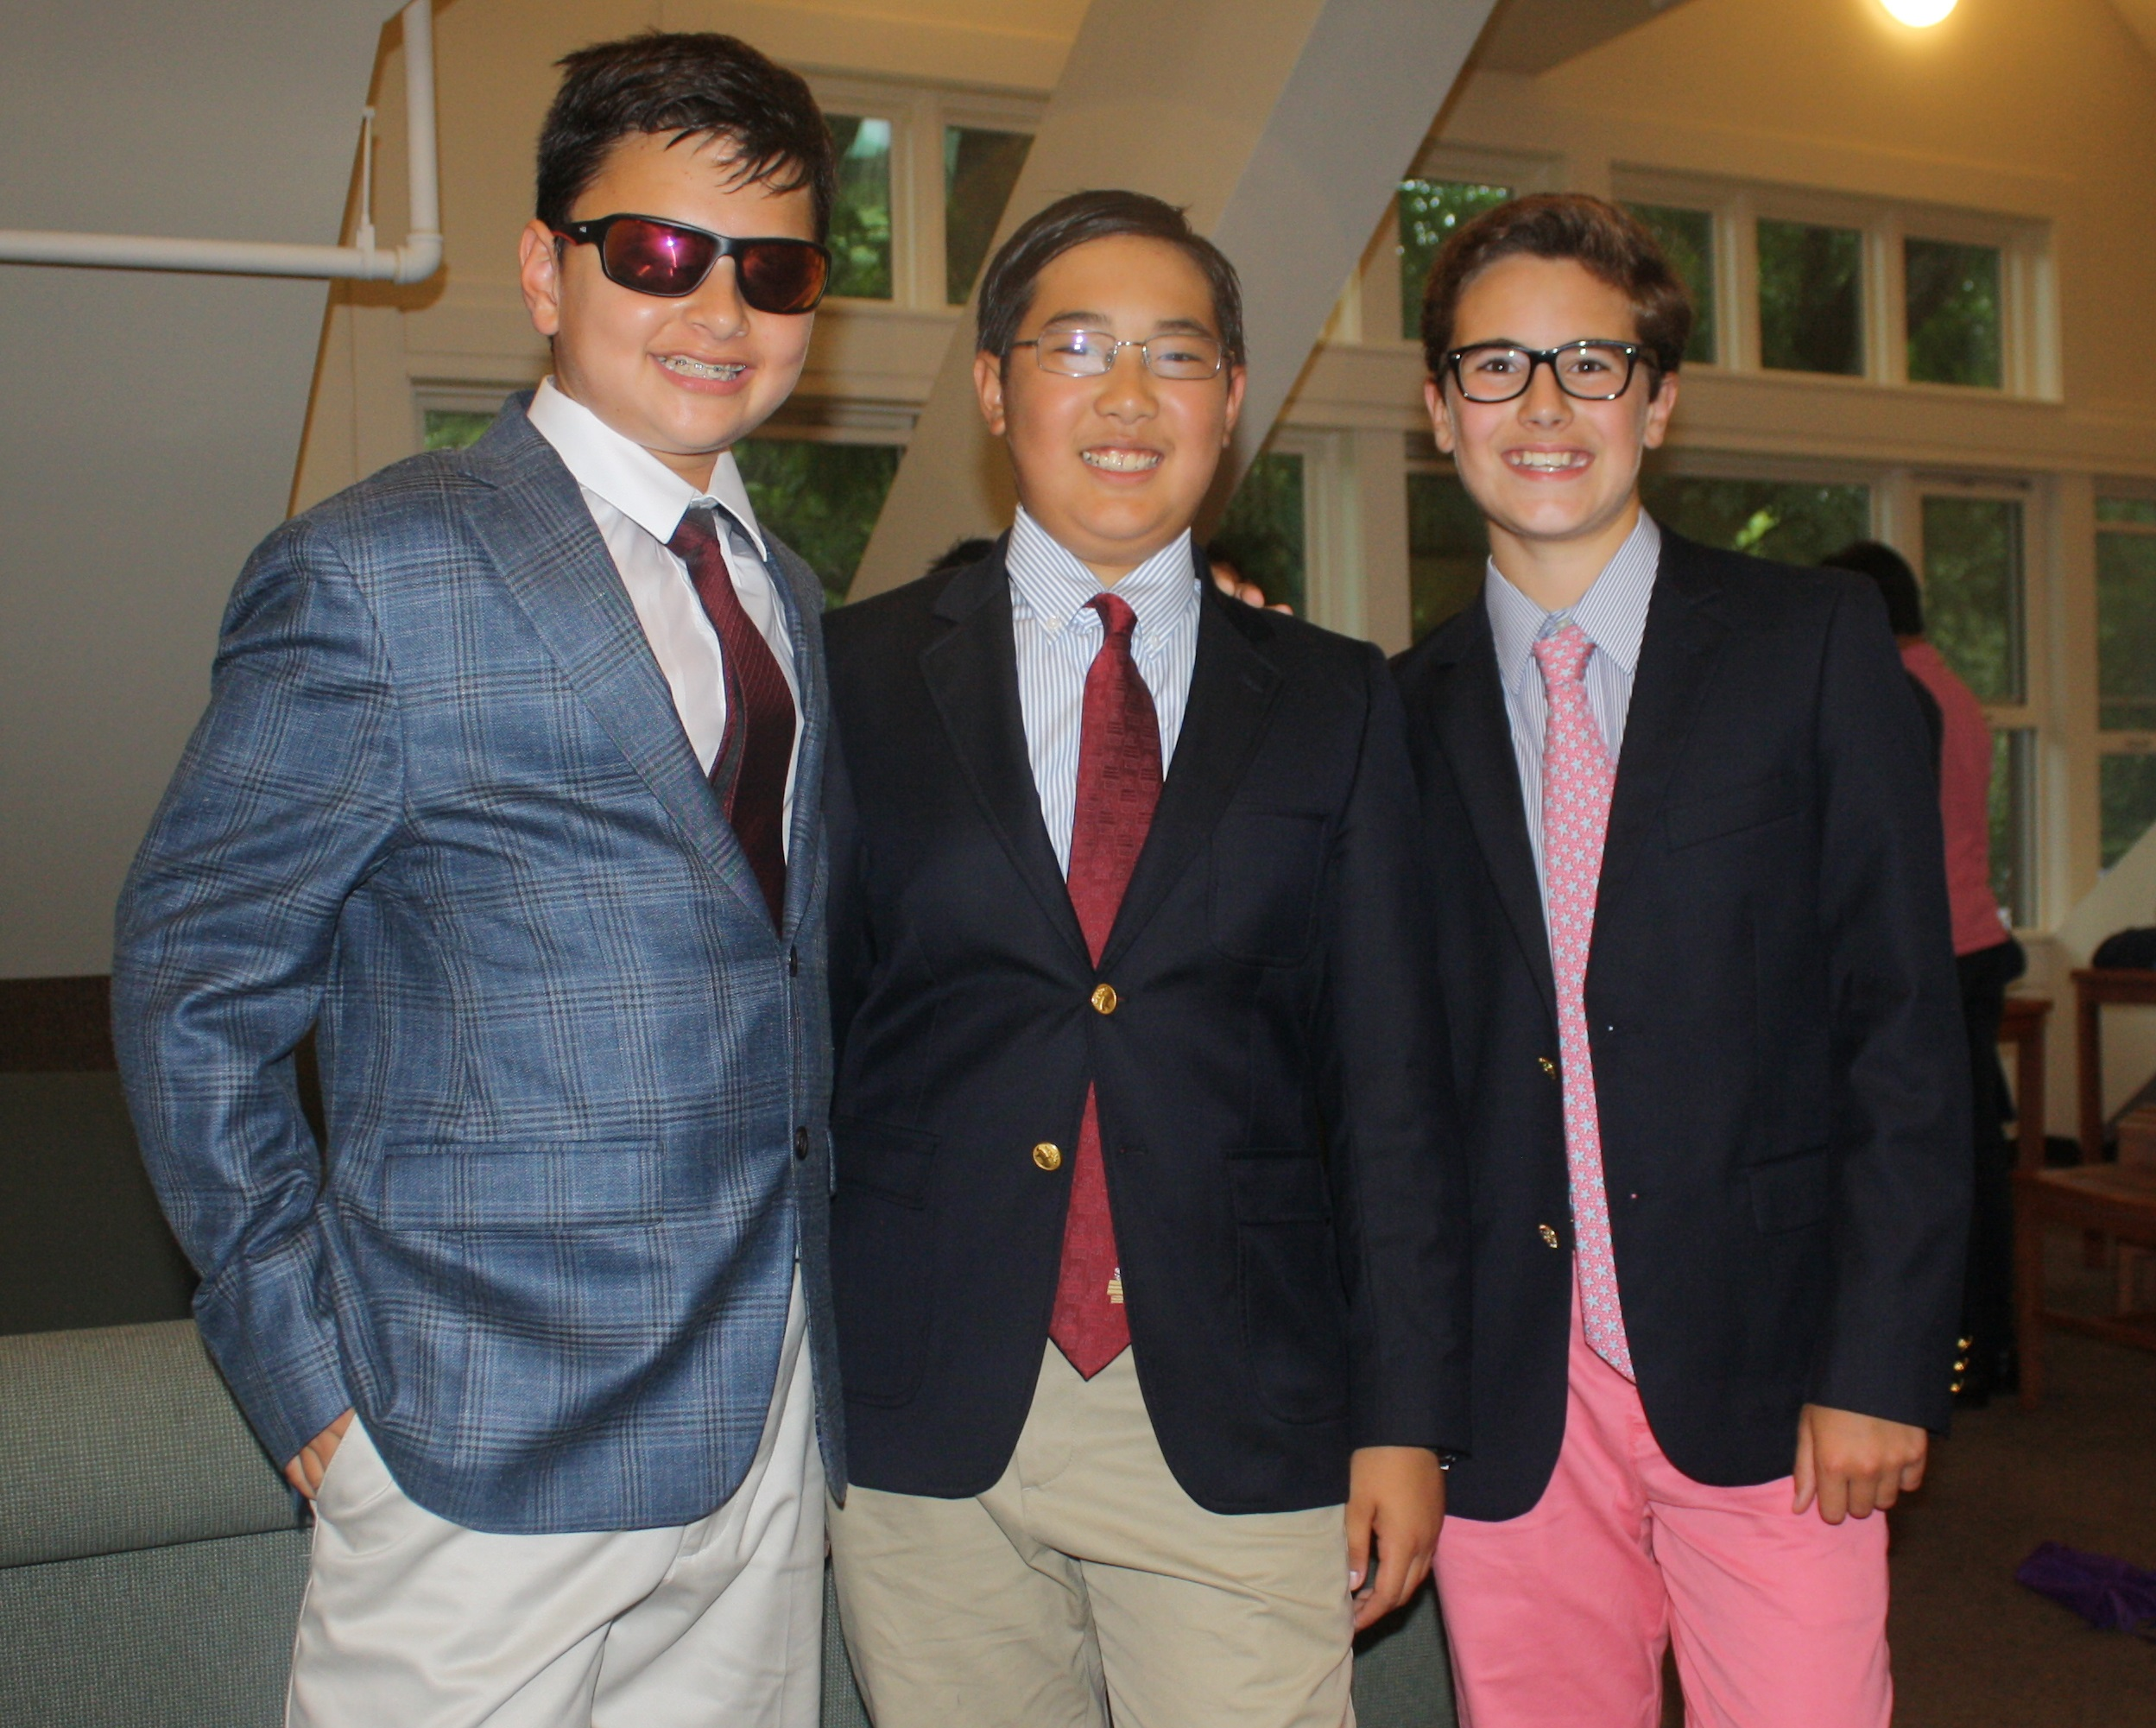 These three clean up well for middle school boys. They are ready for our Summer Program dance party!